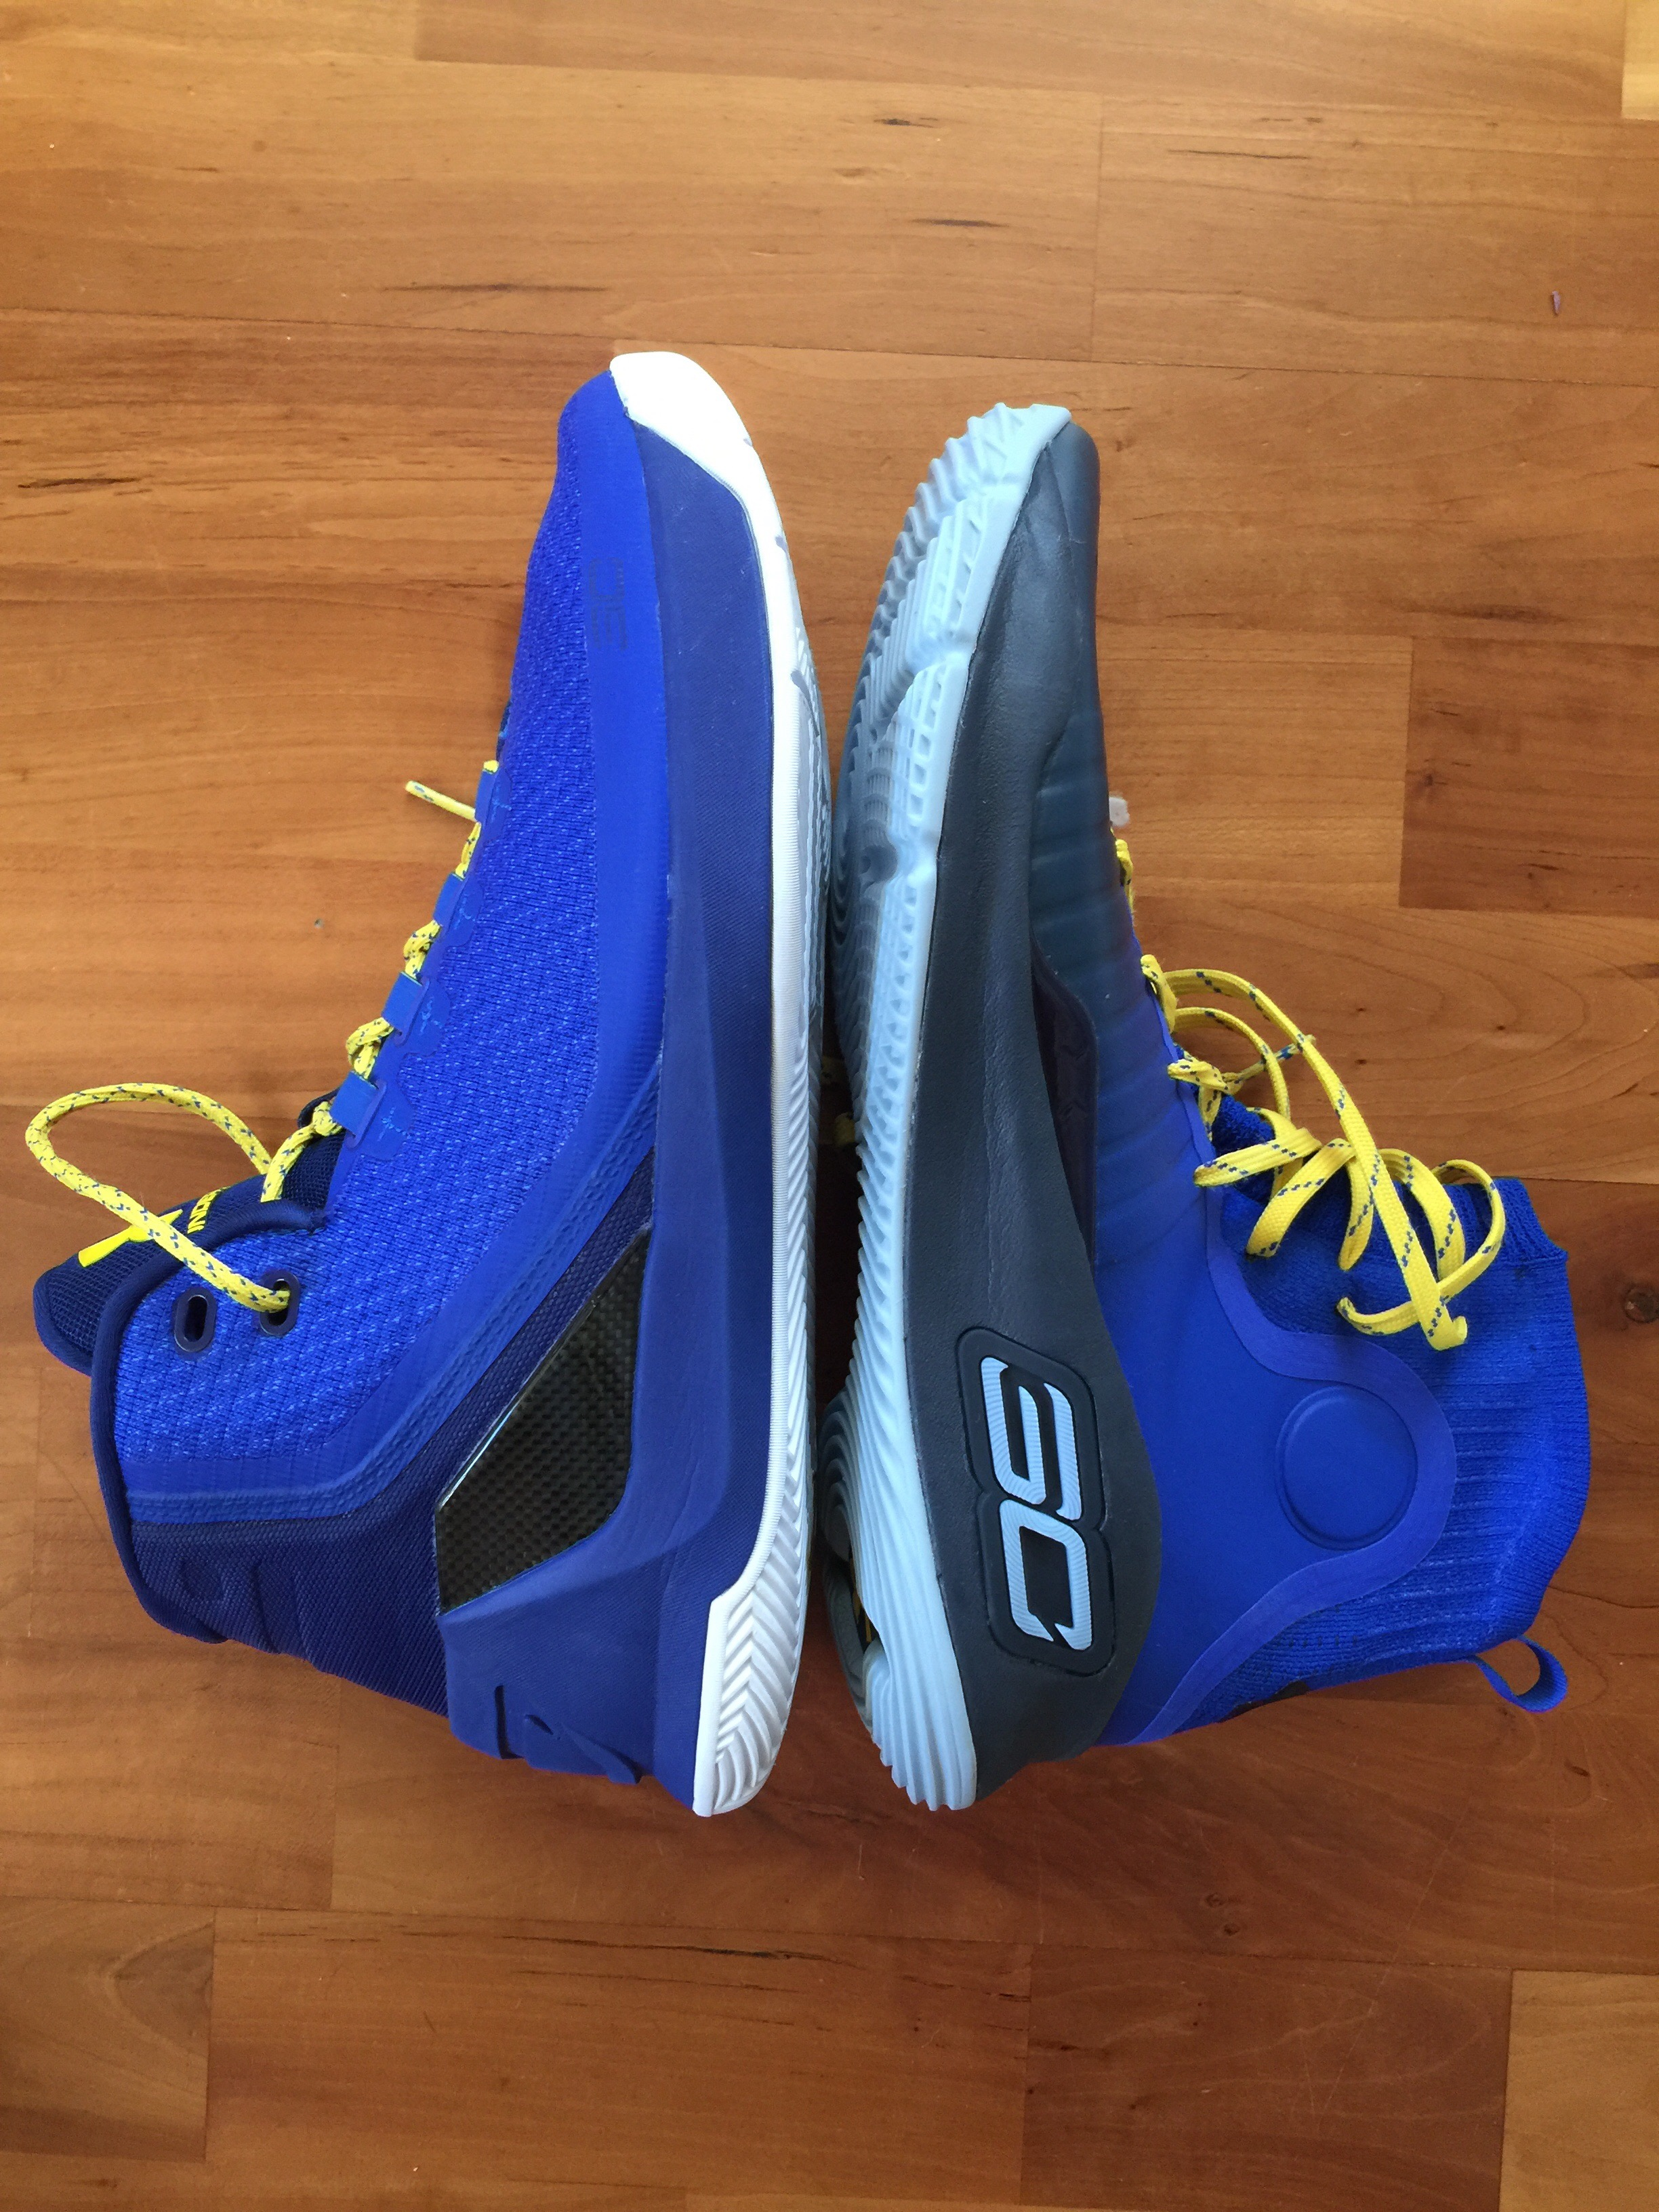 1041cee2b2a98 Look how much smaller the Curry 4 size 11.5 is vs a size 11 Curry 3